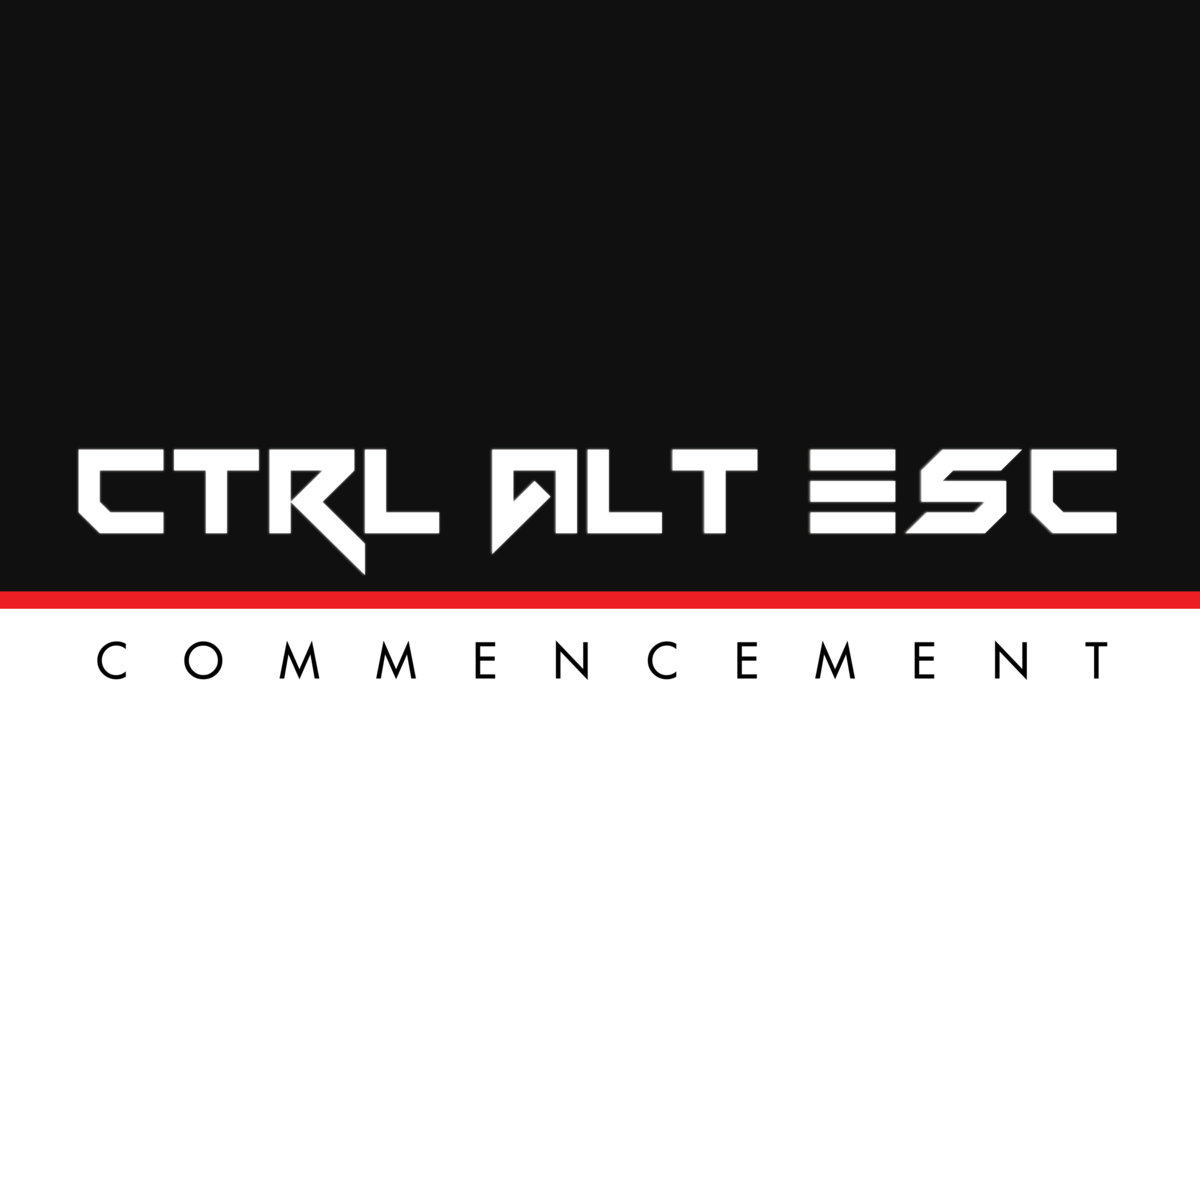 Ctrl Alt Esc - Your Love Is Dangerous